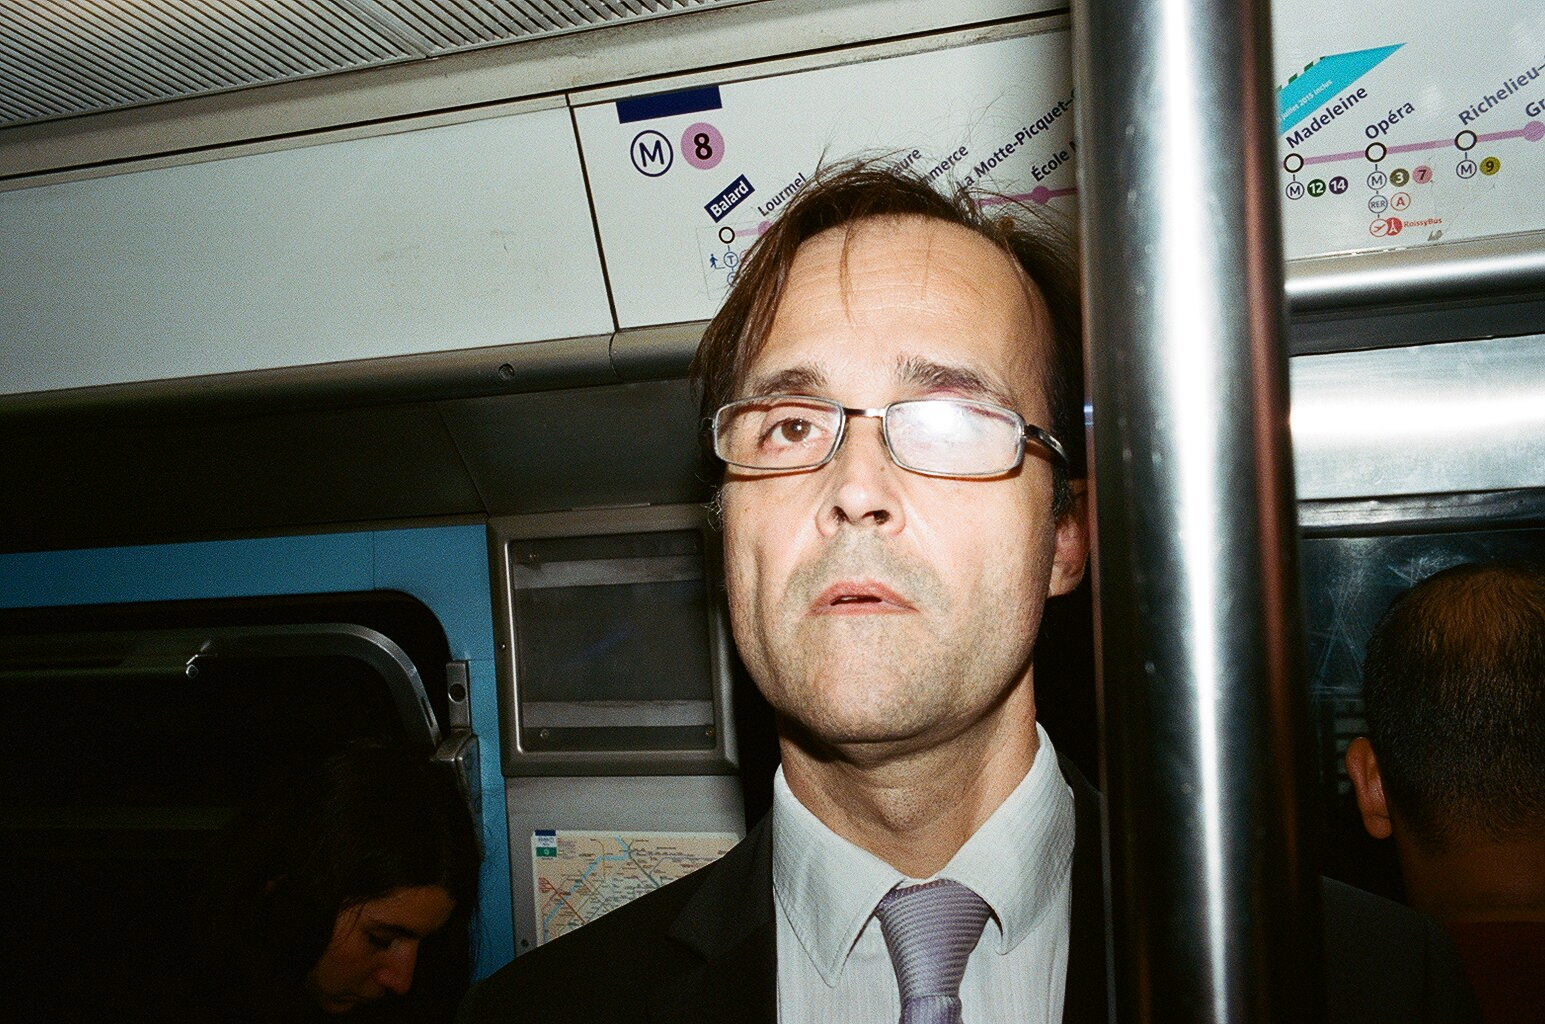 Leica MP + Leica Summicron 35mm f2 ASPH + Kodak Portra 400 + flash in Paris subway.